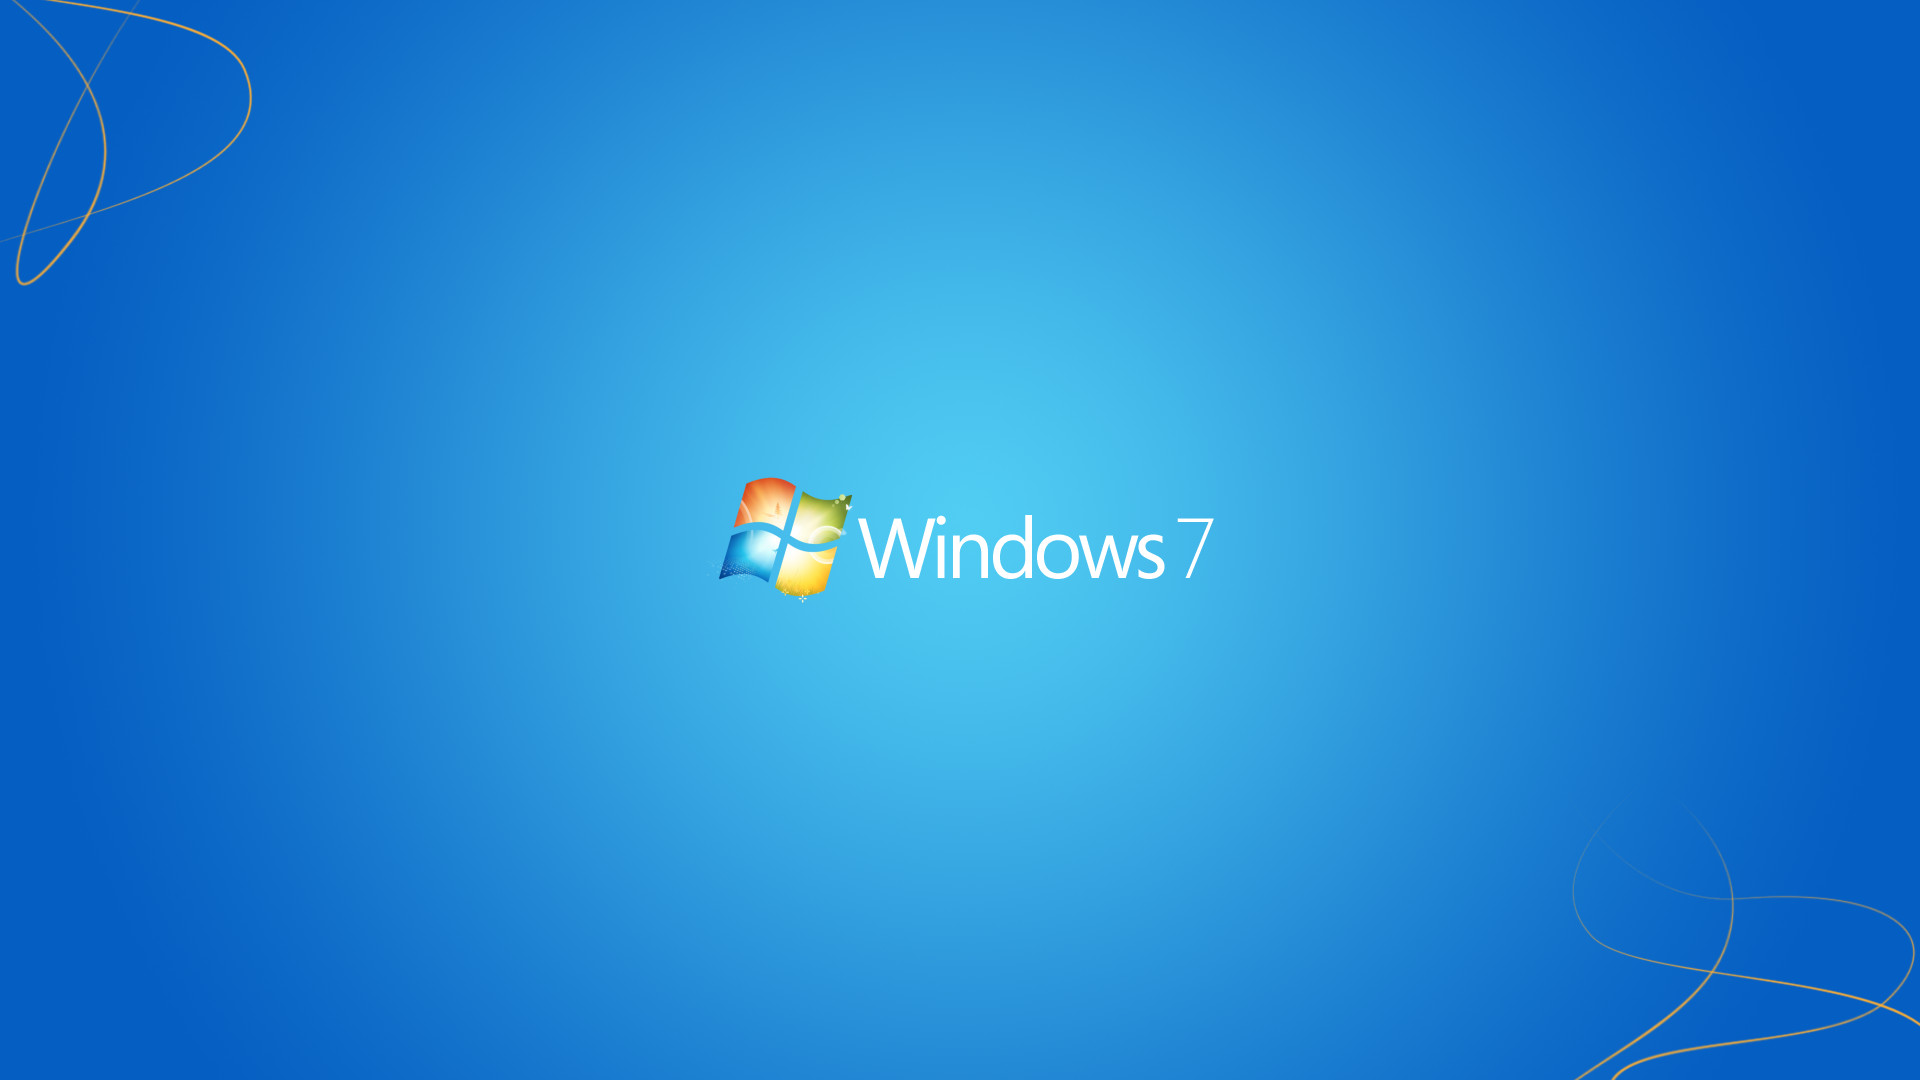 Res: 1920x1080, Windows 7 Wallpaper (Energy Bliss) by Scimiazzurro on DeviantArt